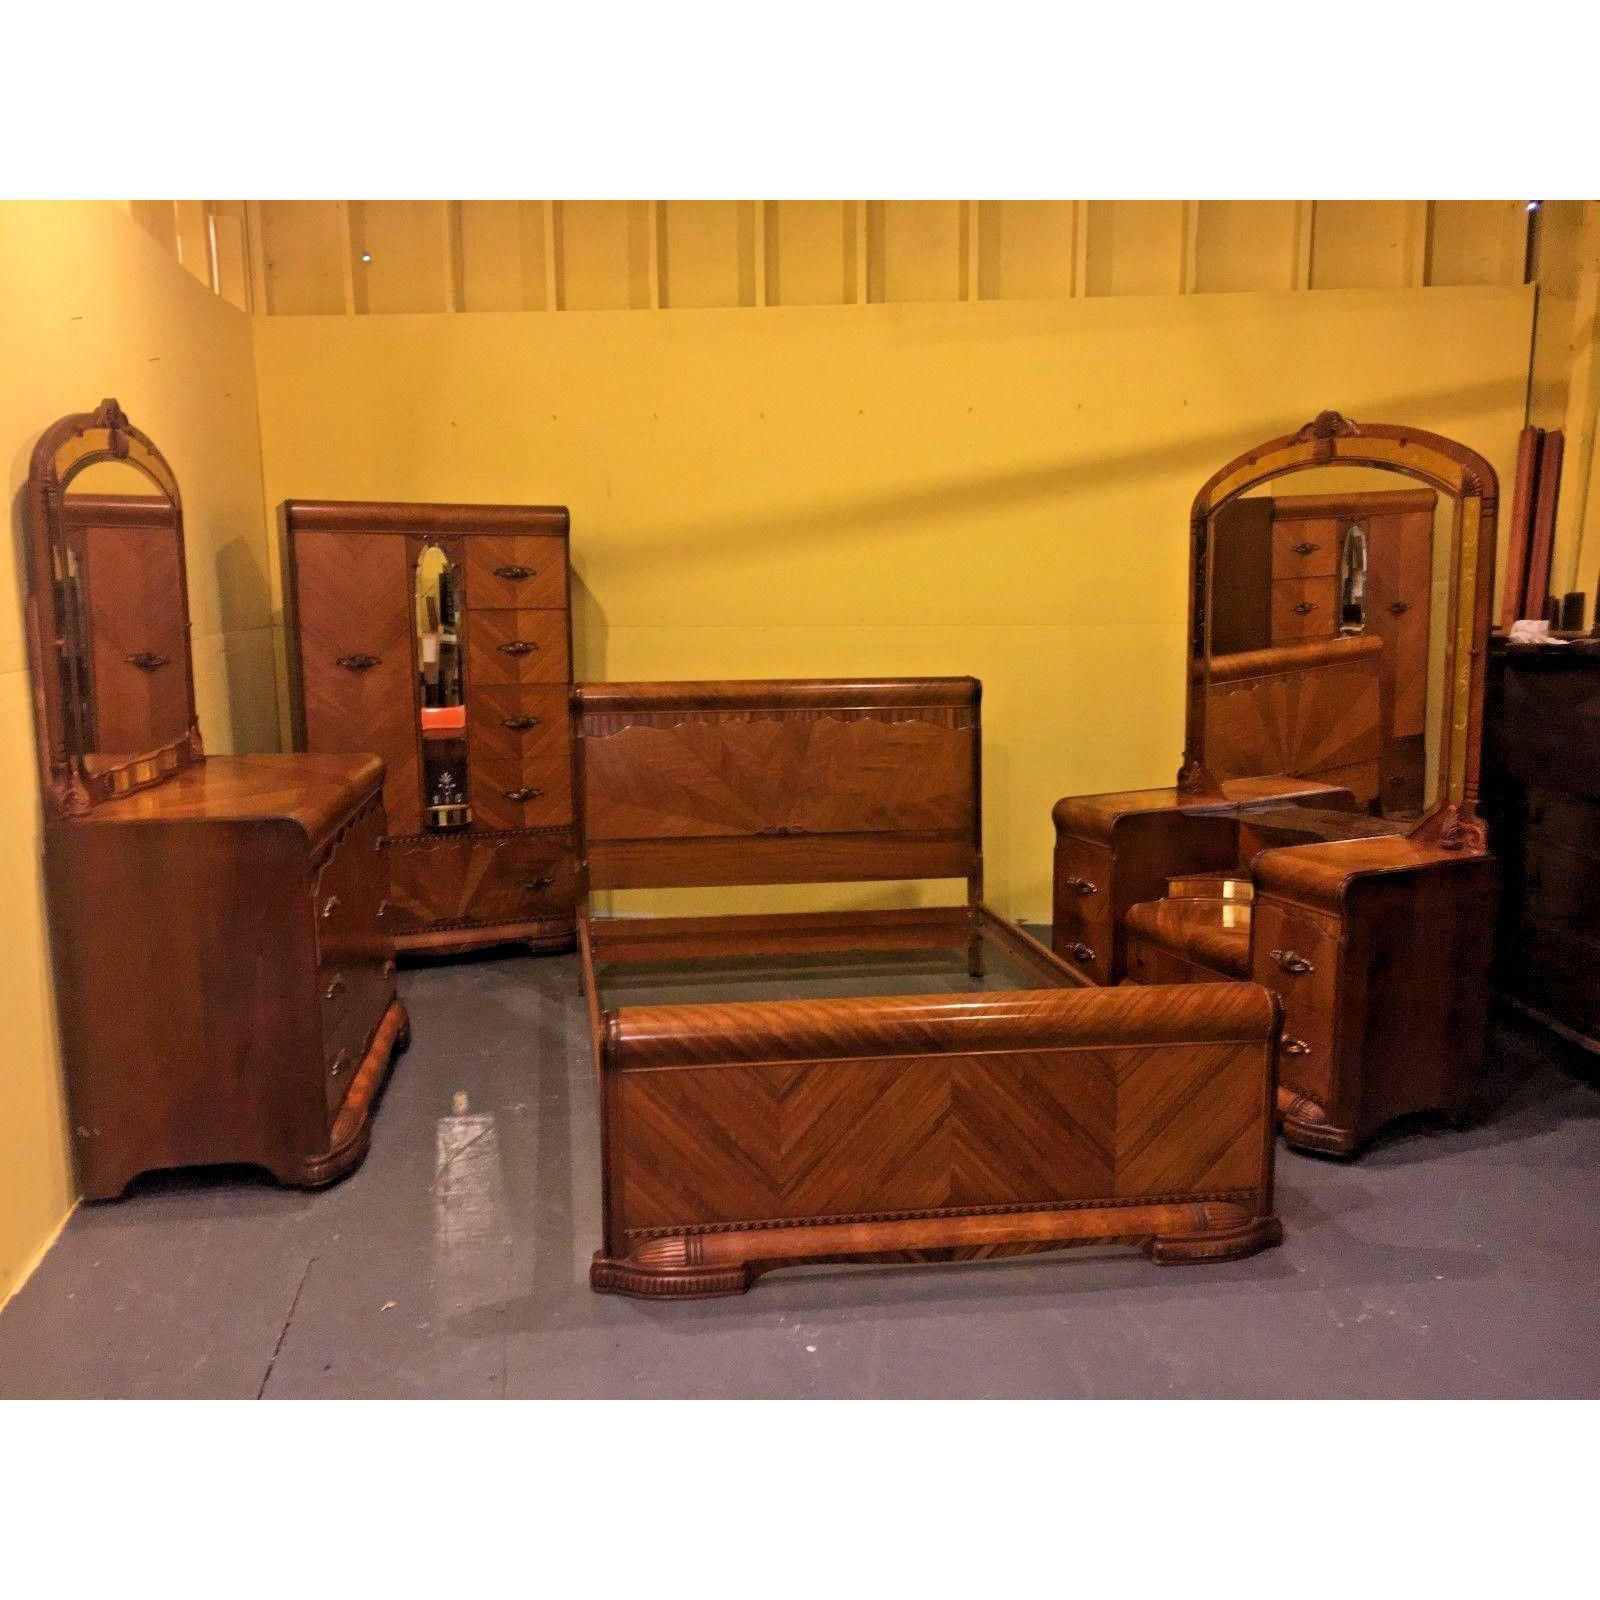 Image Of Art Deco 4 Piece Waterfall Anique Bedroom Set Art Deco Bedroom Furniture Waterfall Art Deco Waterfall Bedroom